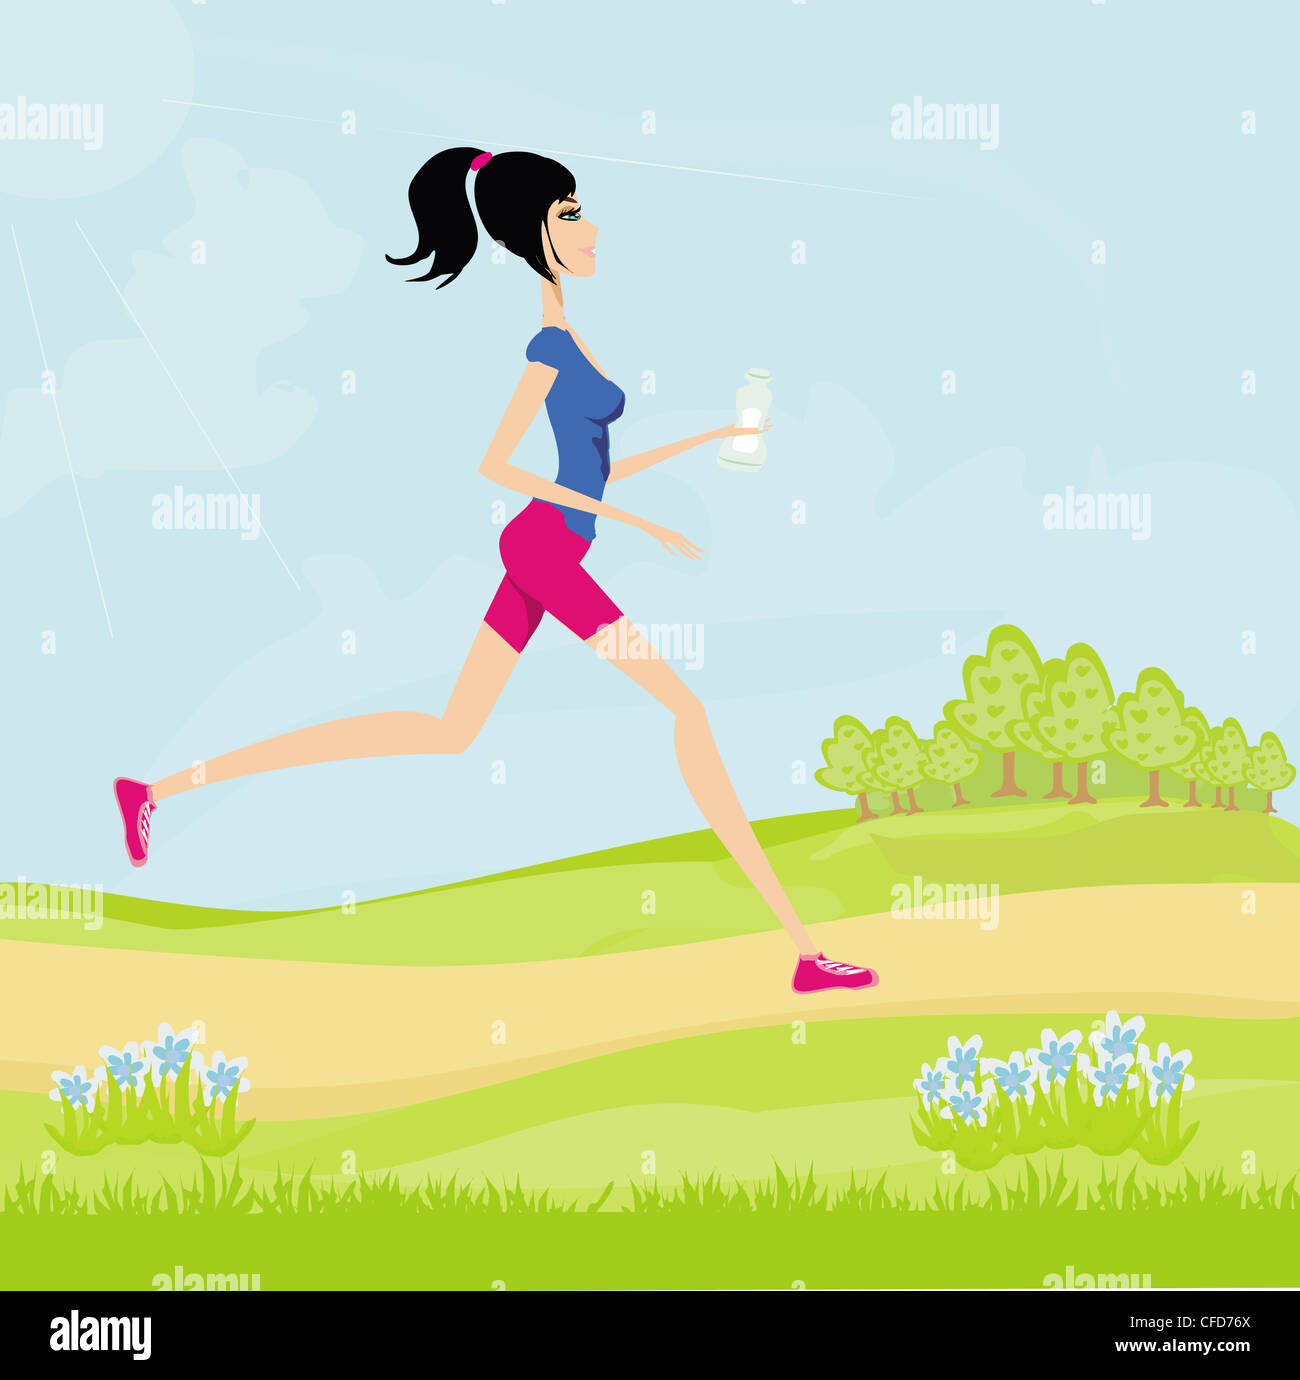 Ragazza per fare jogging in estate Immagini Stock